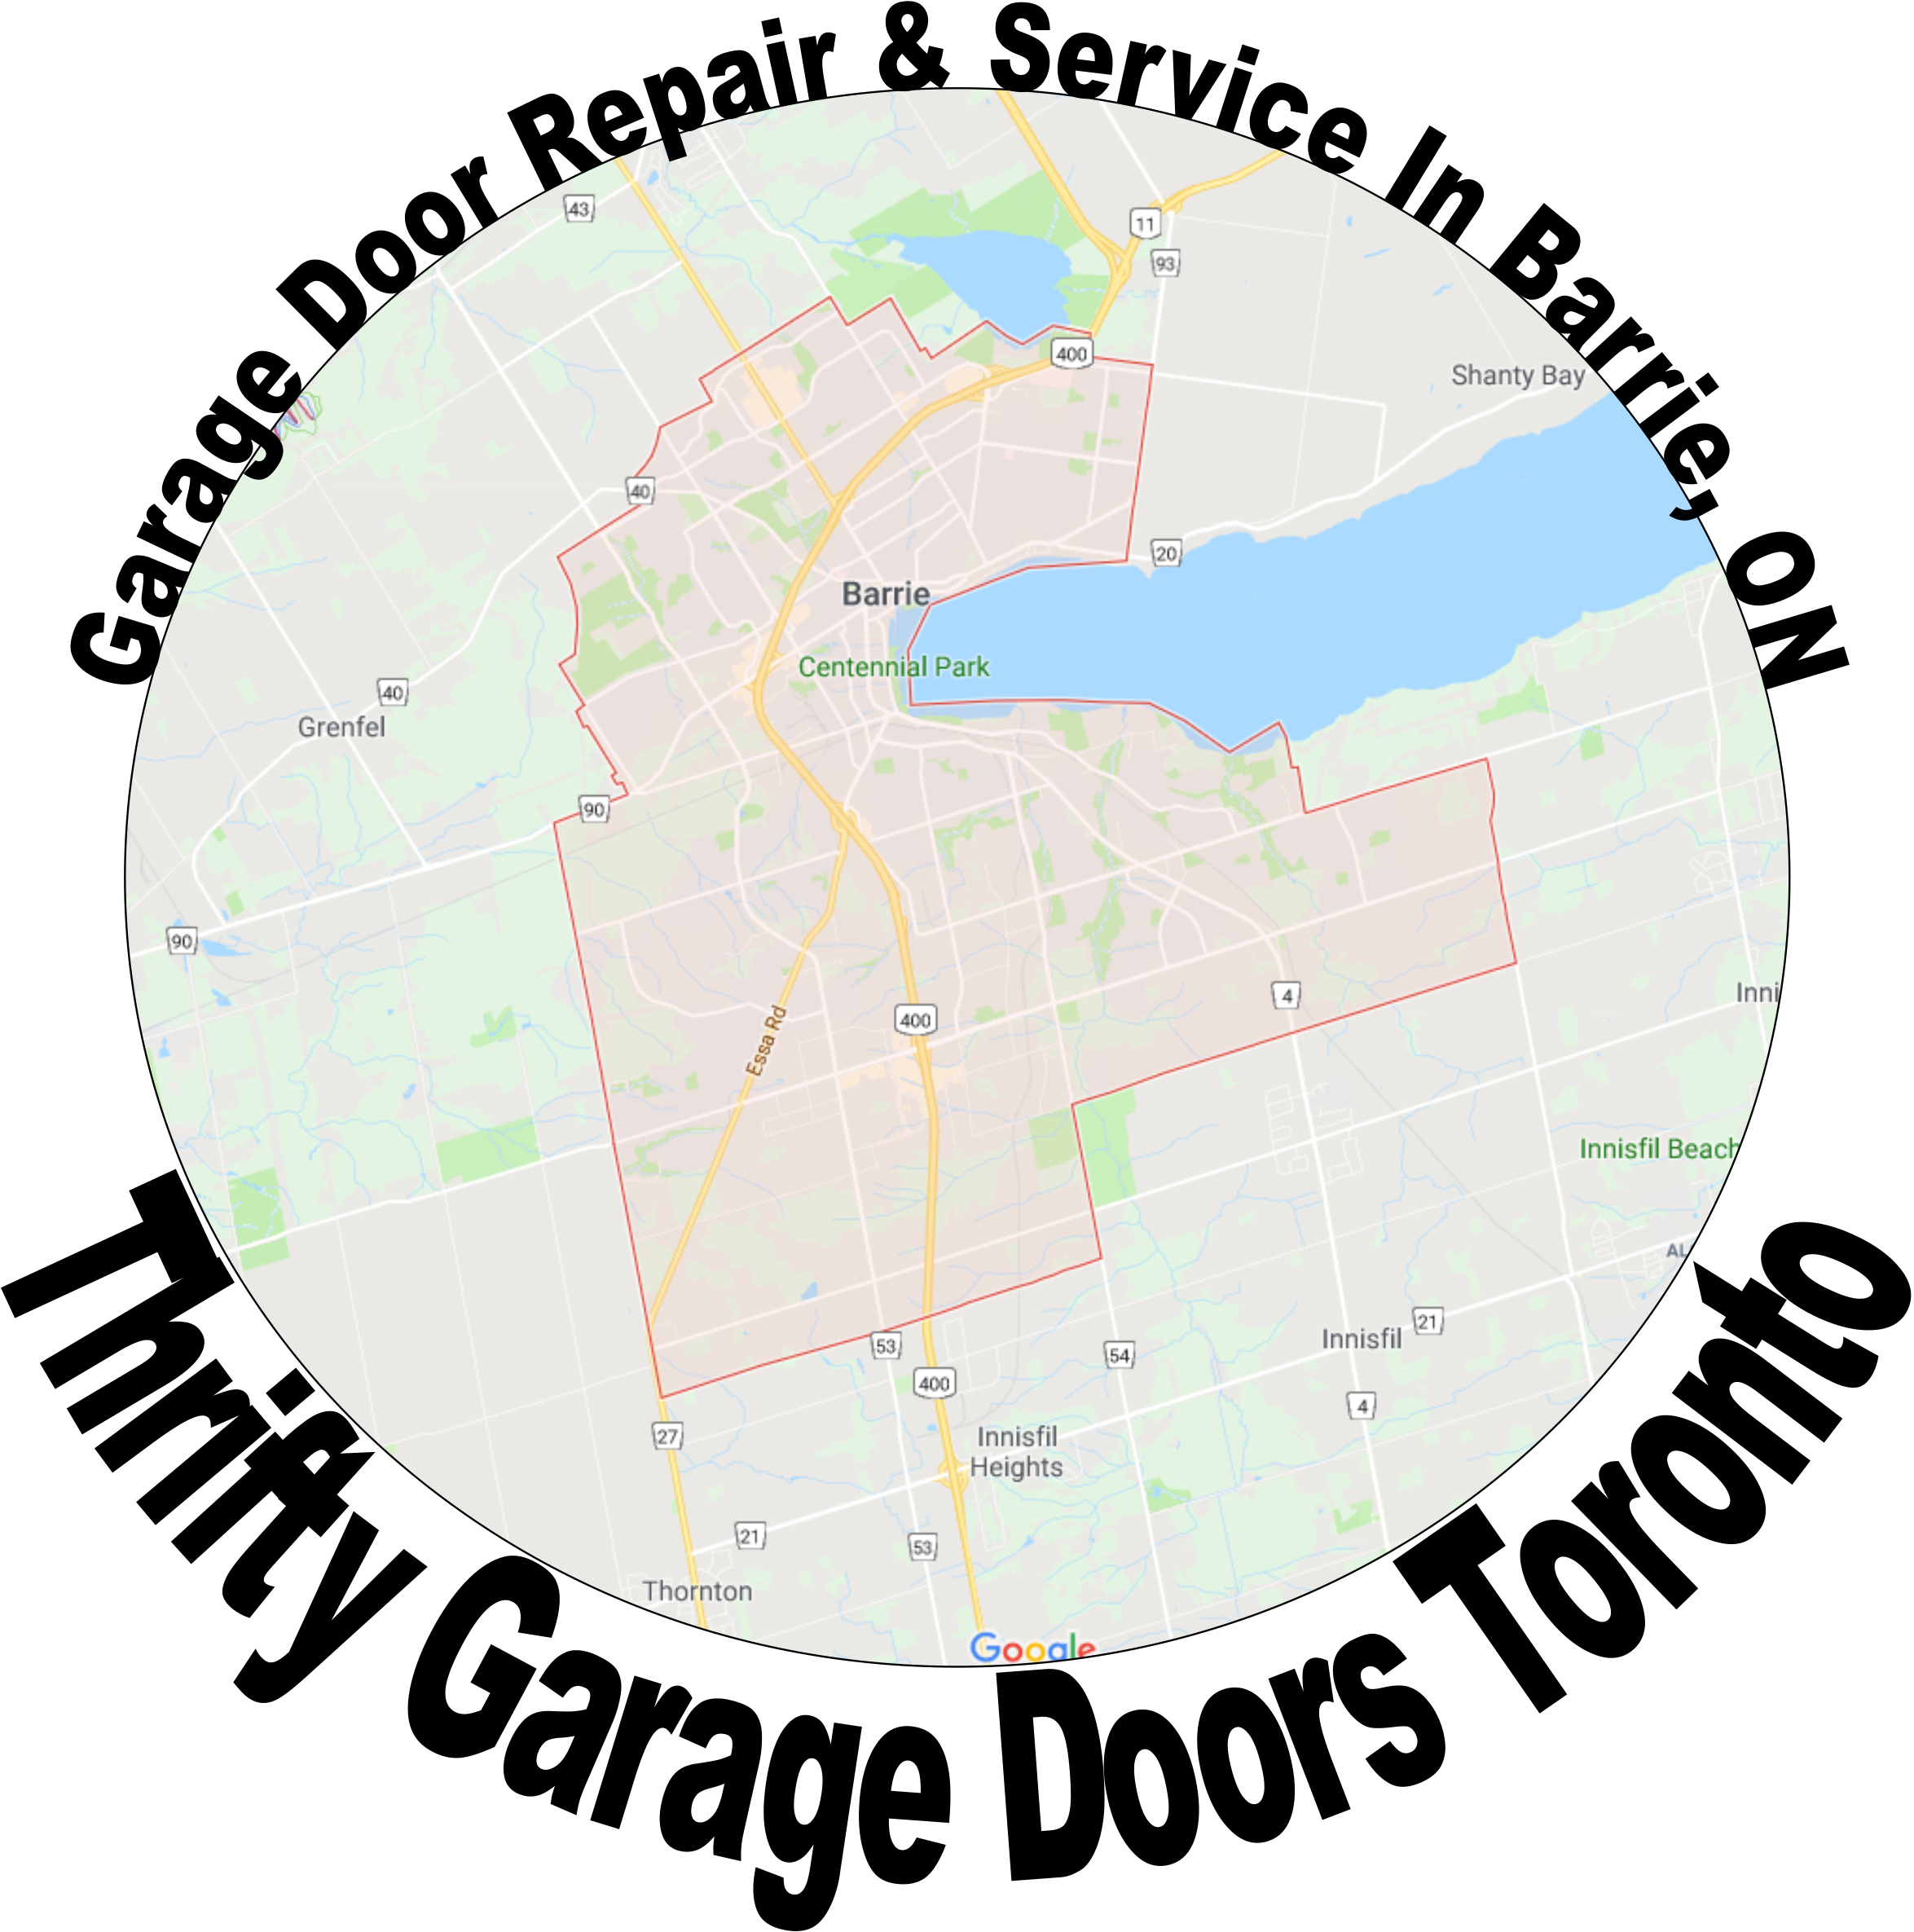 garage door repair in barrie on